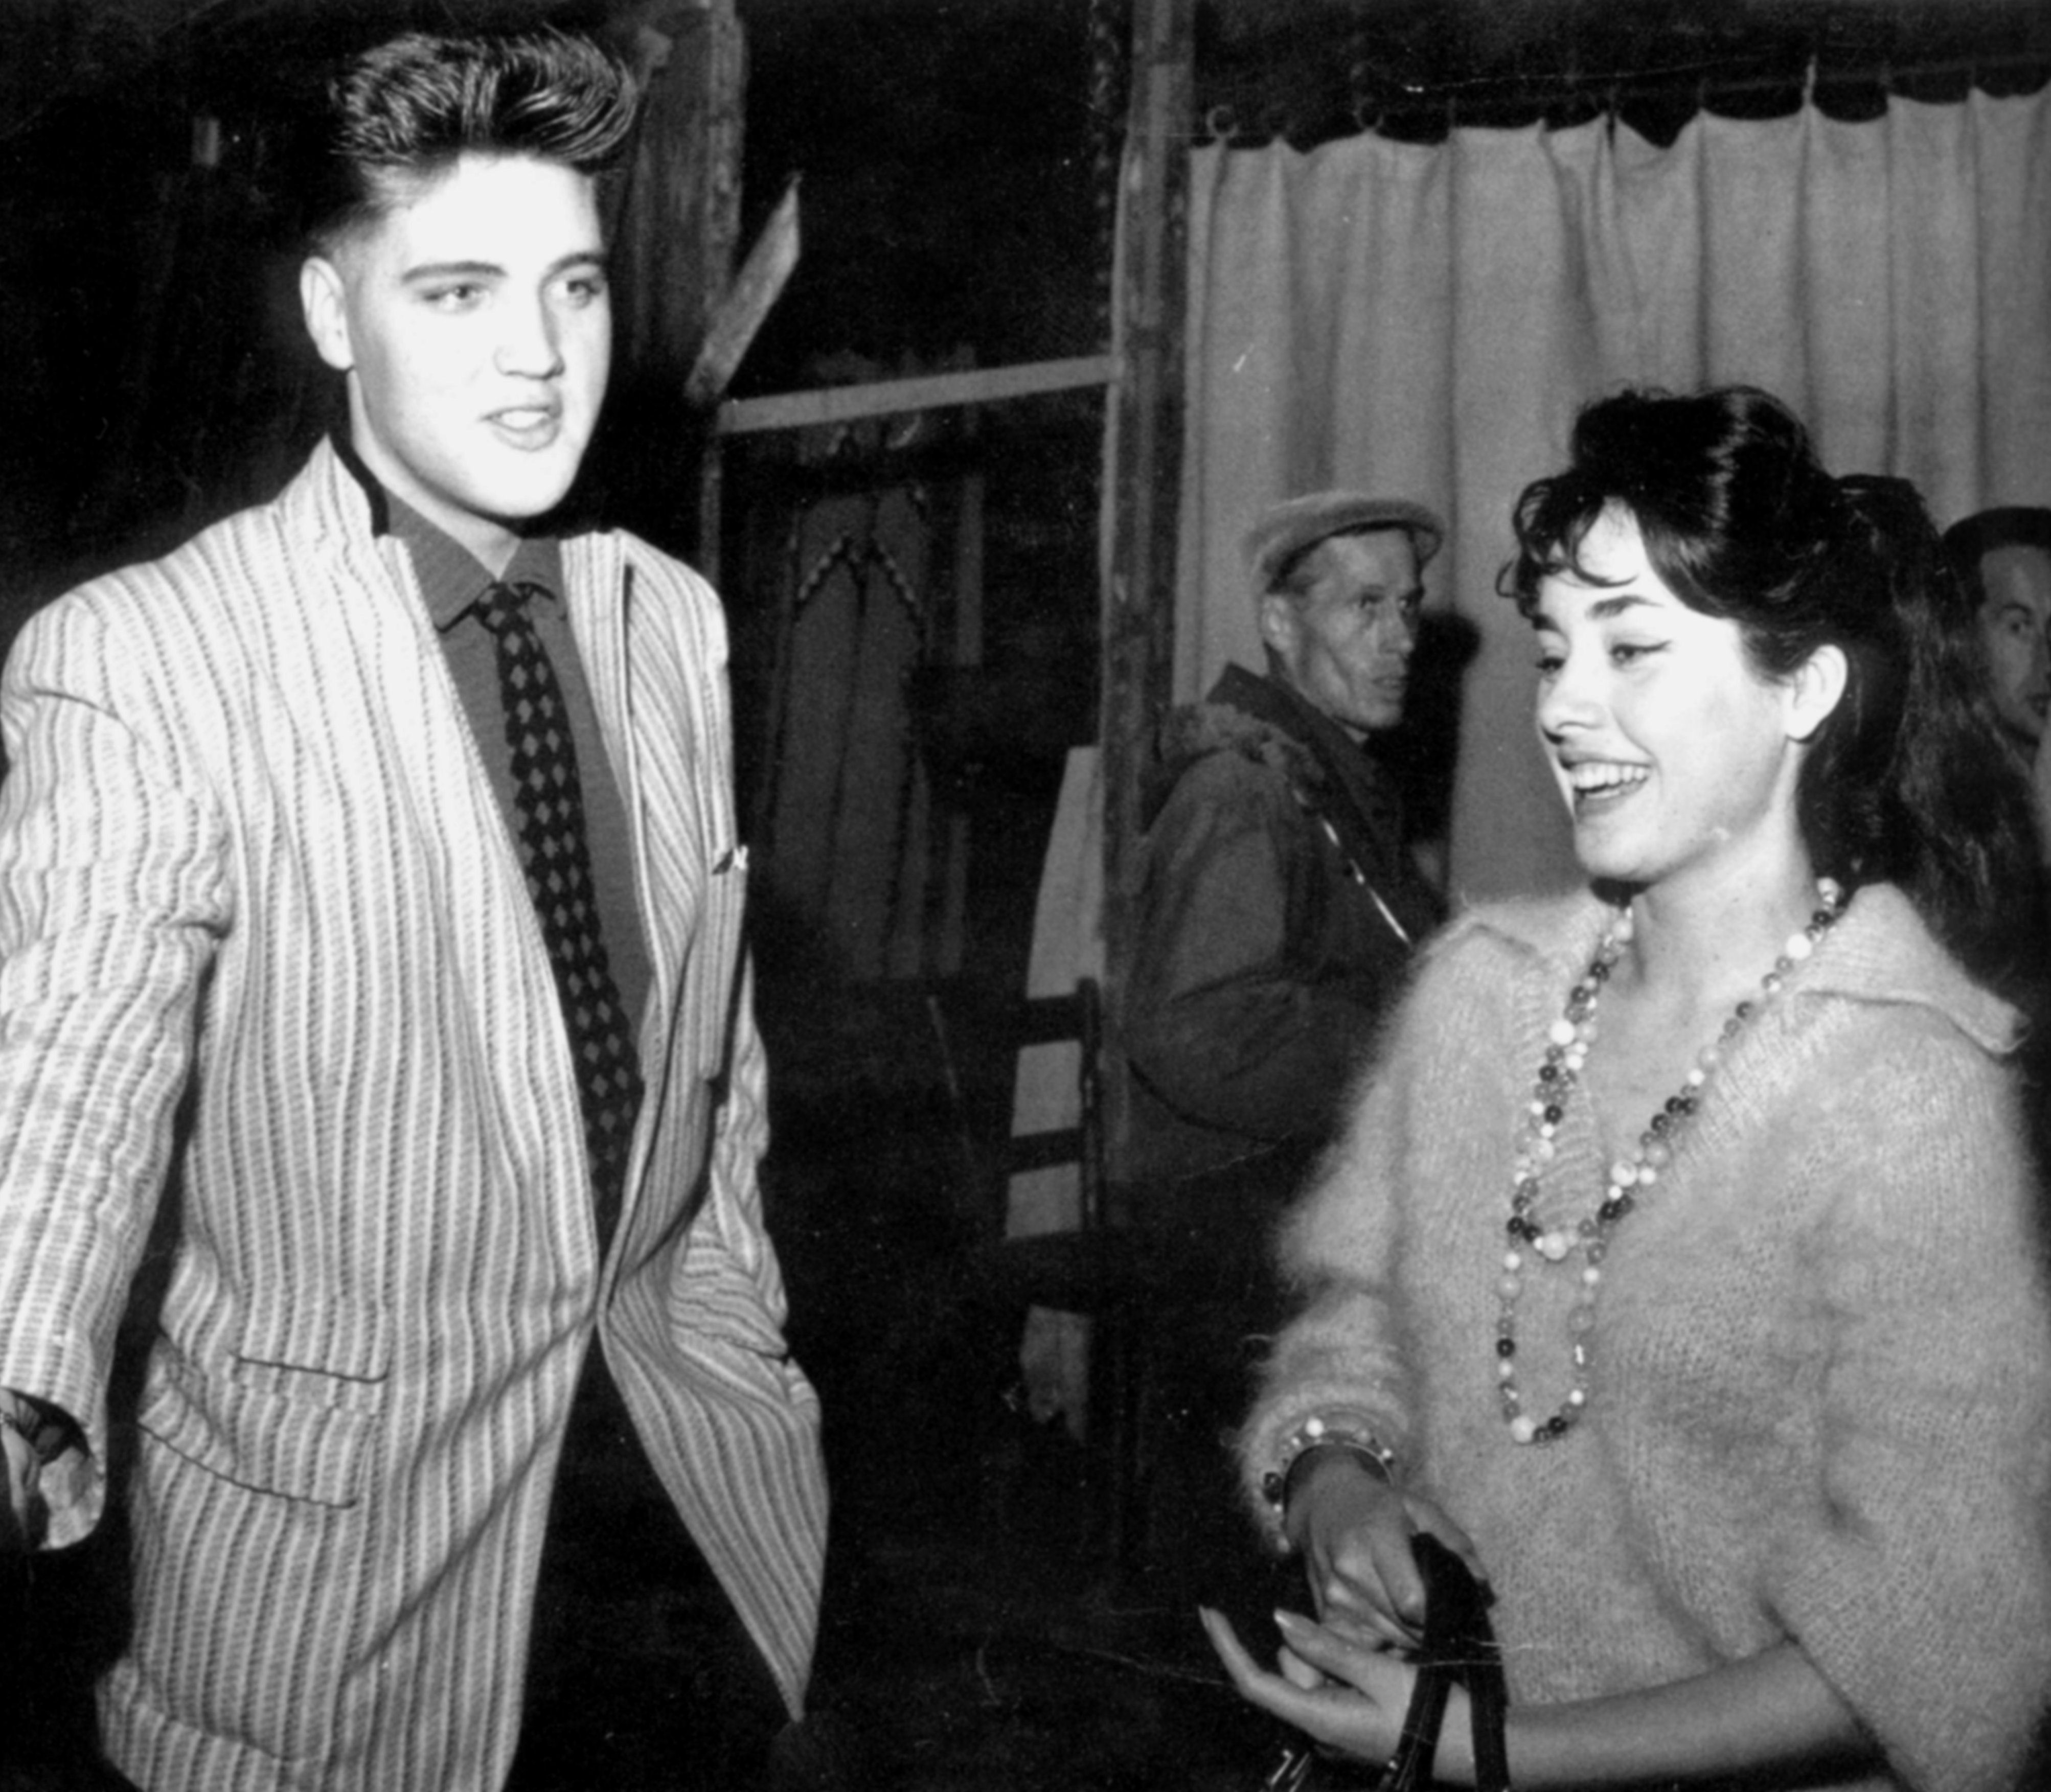 Elvis in march 5  1959 in Germany wearing for the last time that legendary green jacket here with his date Vera Tschechowa